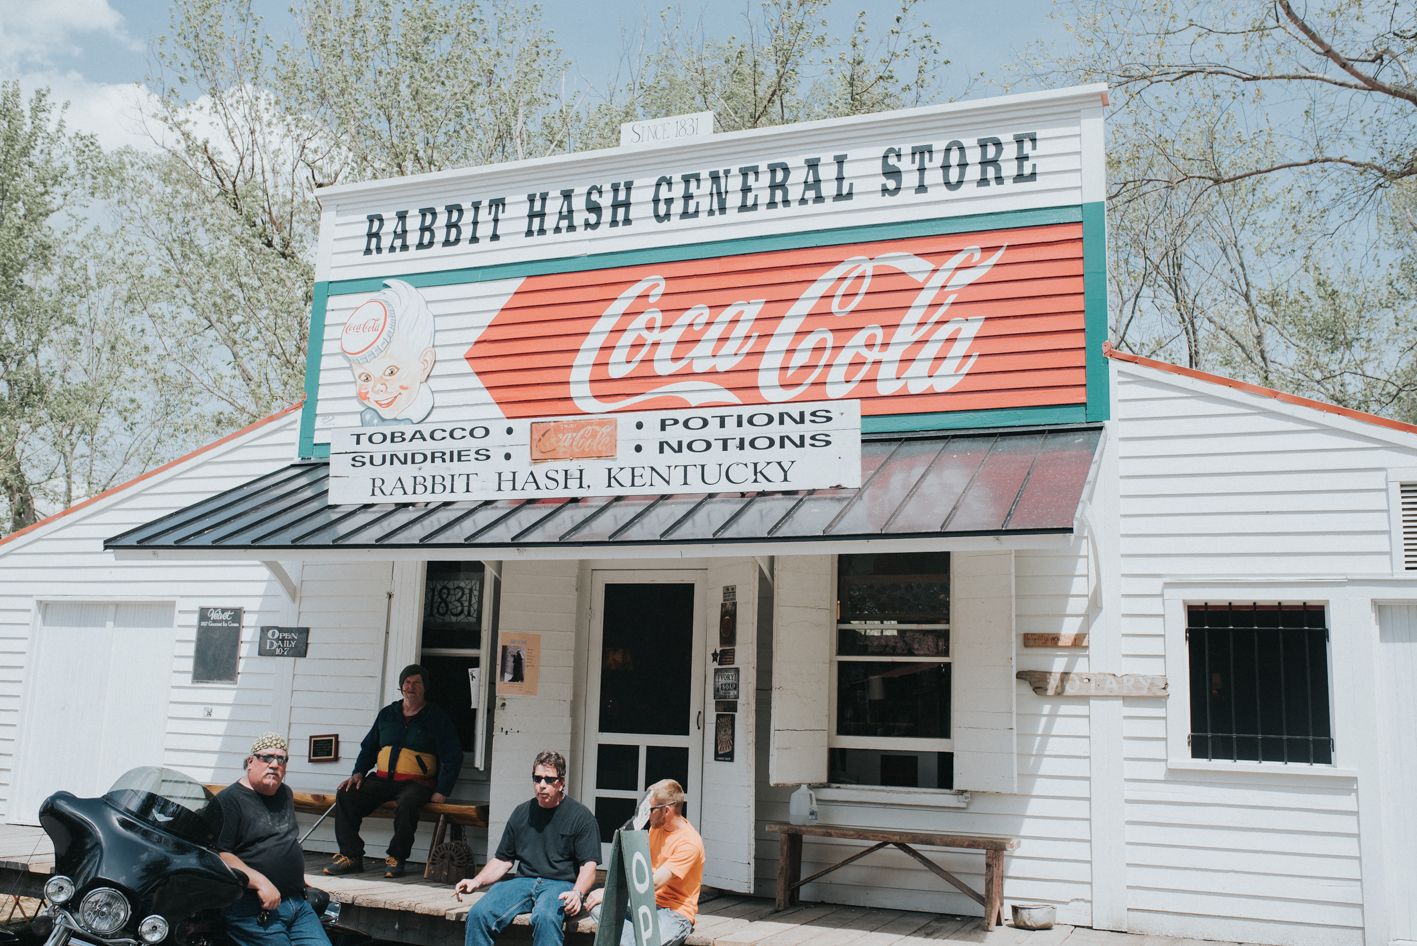 Despite burning down early last year, the Rabbit Hash General Store (a 186-year-old institution) was rebuilt as an exact replica of its predecessor. It remains on the National Register of Historic Places. / FUN FACT about Rabbit Hash: A 3-year-old pit bull named Brynneth Pawltro is the mayor. That is entirely true. A dog is the mayor. / DRIVE TIME from Cincy: Approximately 50 minutes / ADDRESS: 10021 Lower River Rd., Rabbit Hash, KY 41005 / Image: Brianna Long // Published 4.19.17